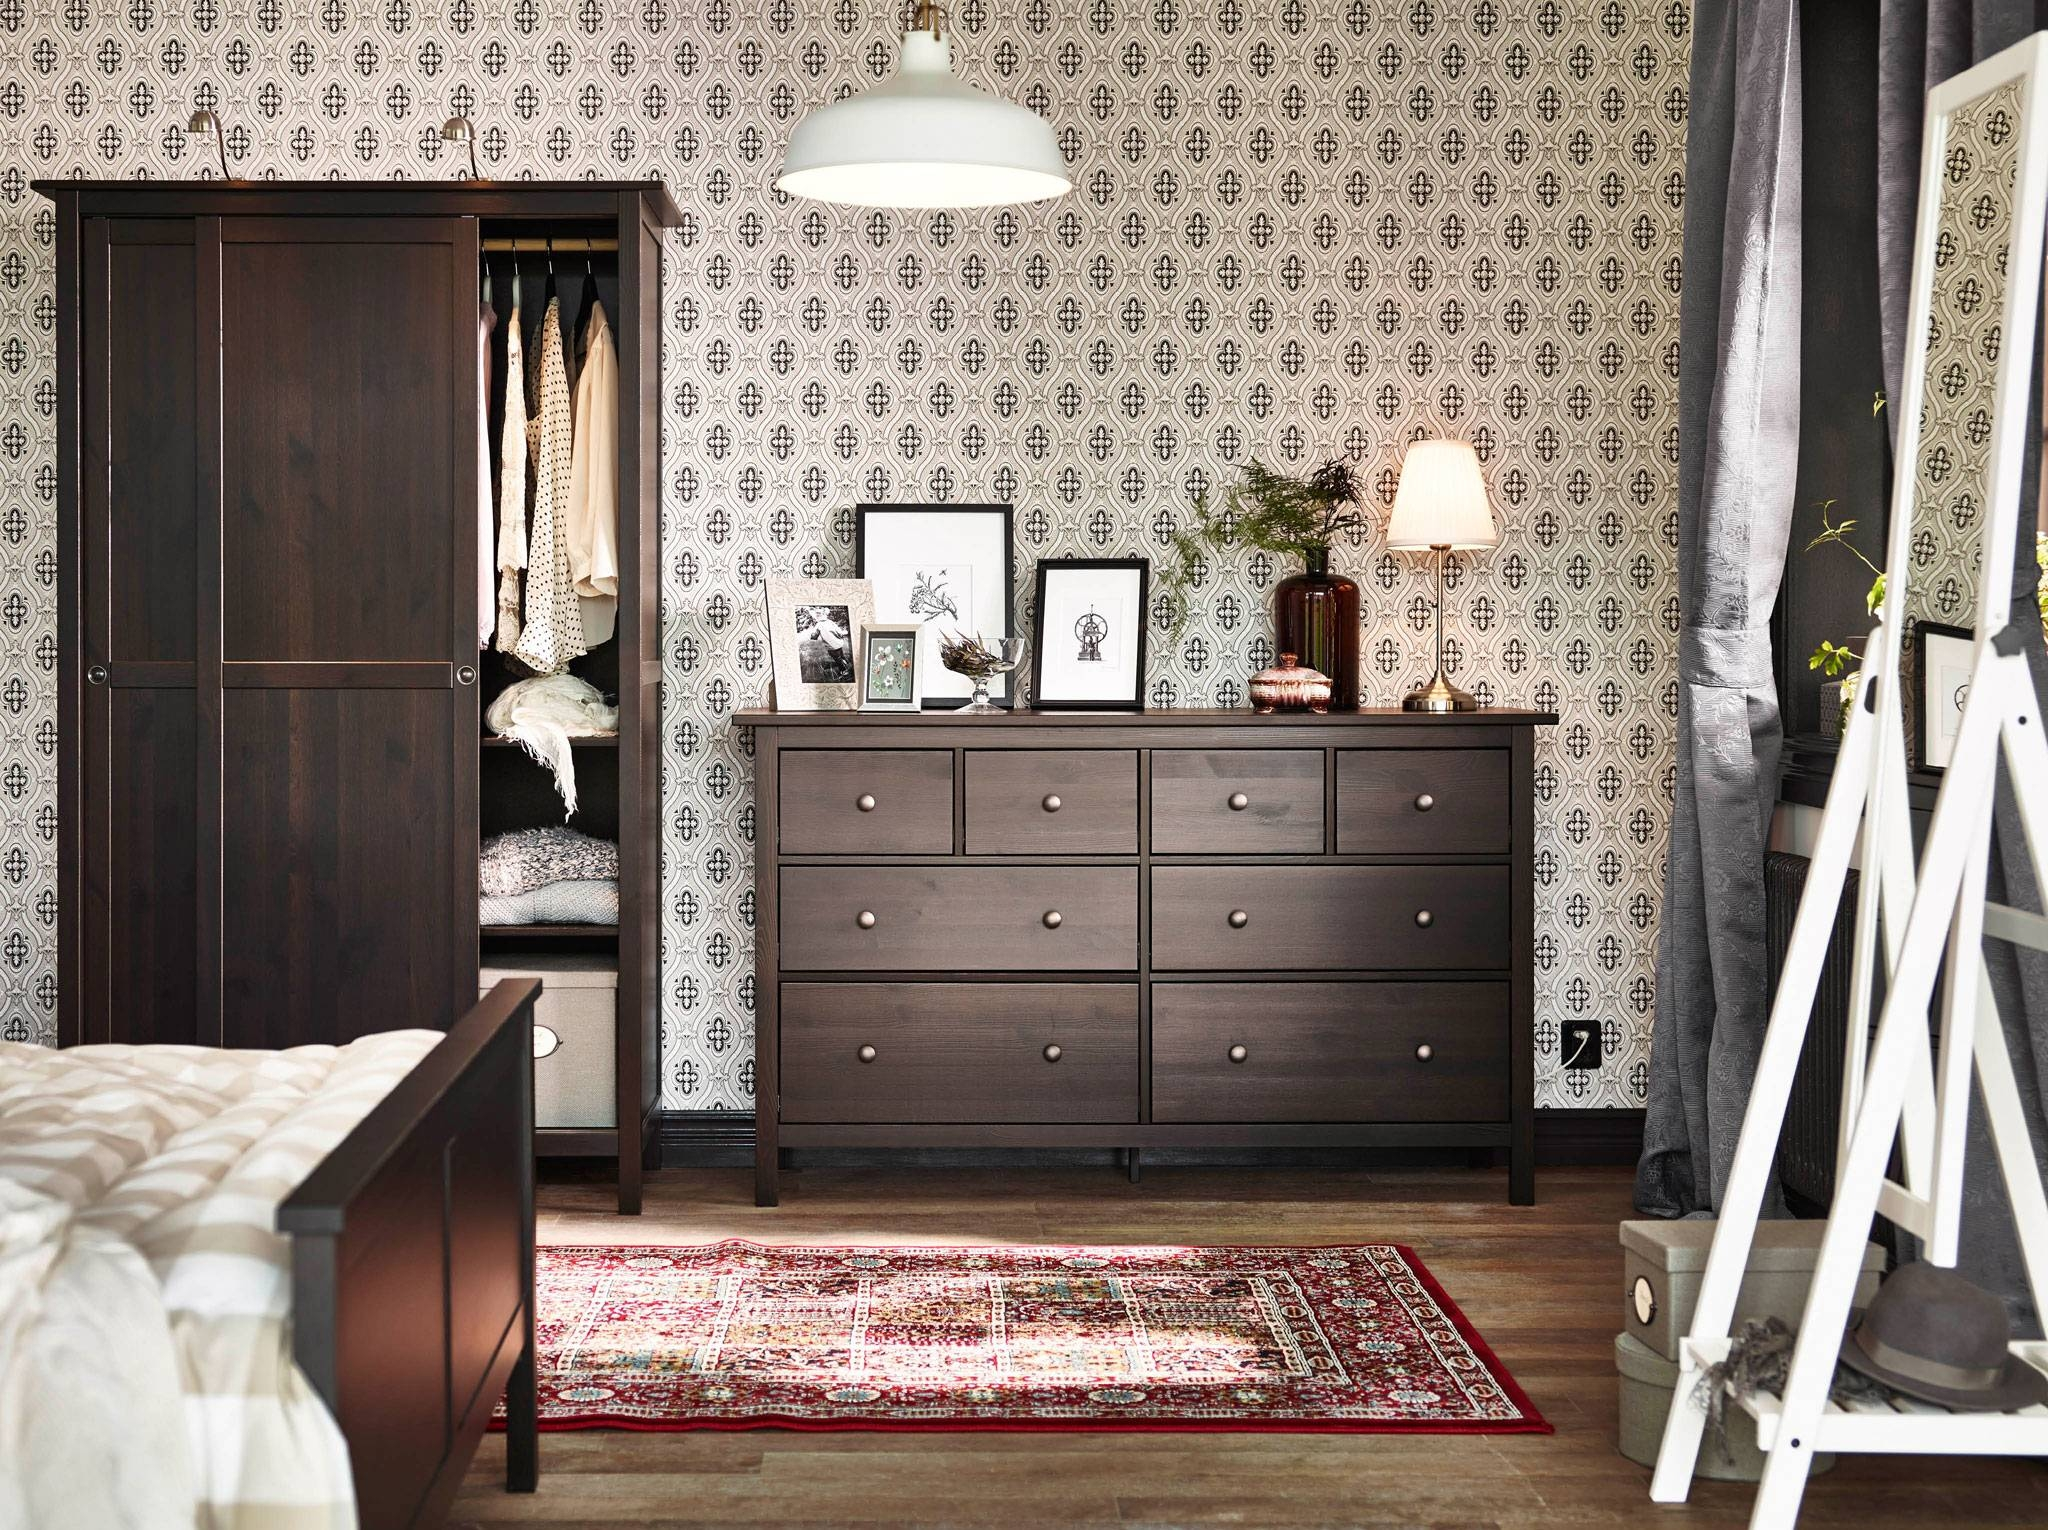 Bedroom Furniture & Ideas | Ikea inside Cheap Wardrobes and Chest of Drawers (Image 3 of 15)